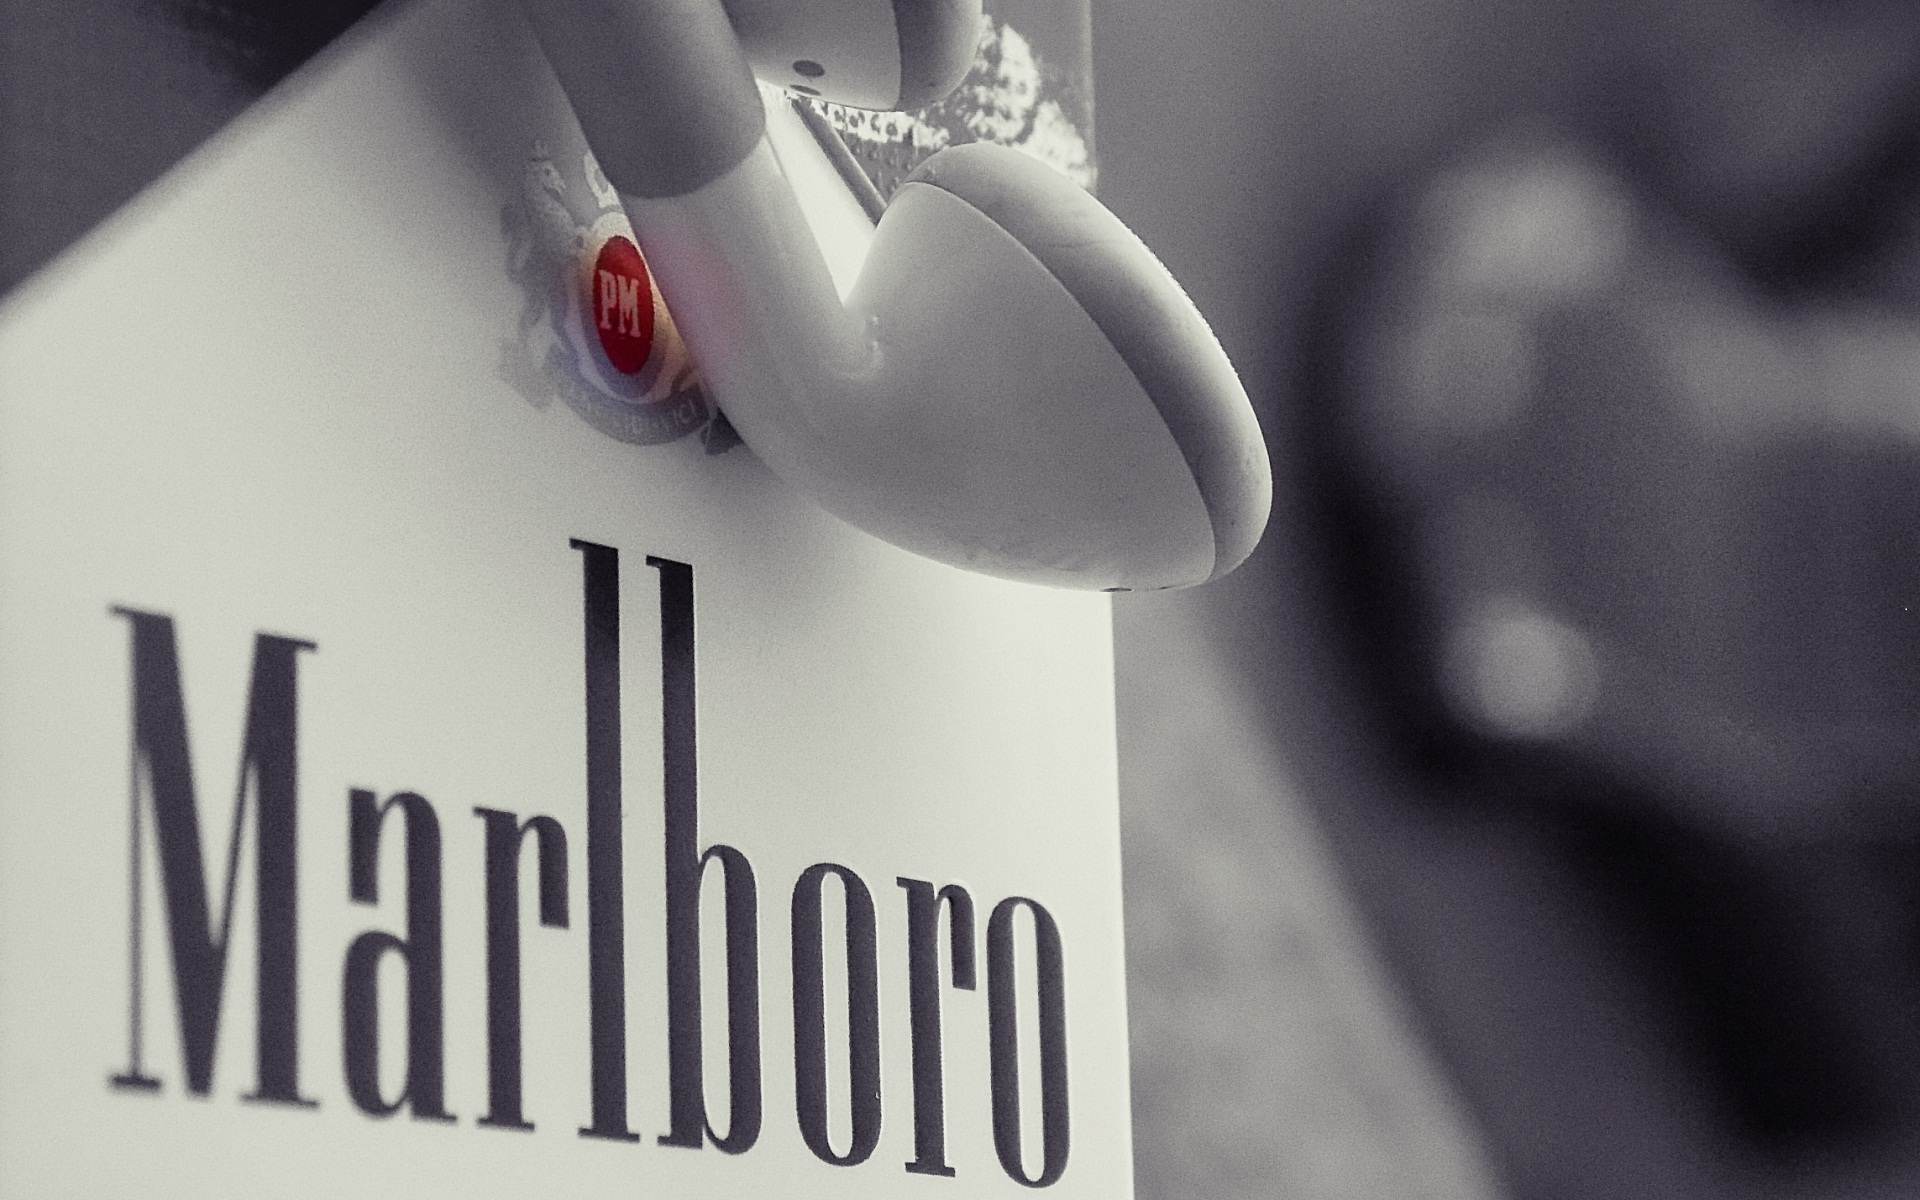 Marlboro Cigarettes Apple Headphones Brand 1920x1200 Wallpaper